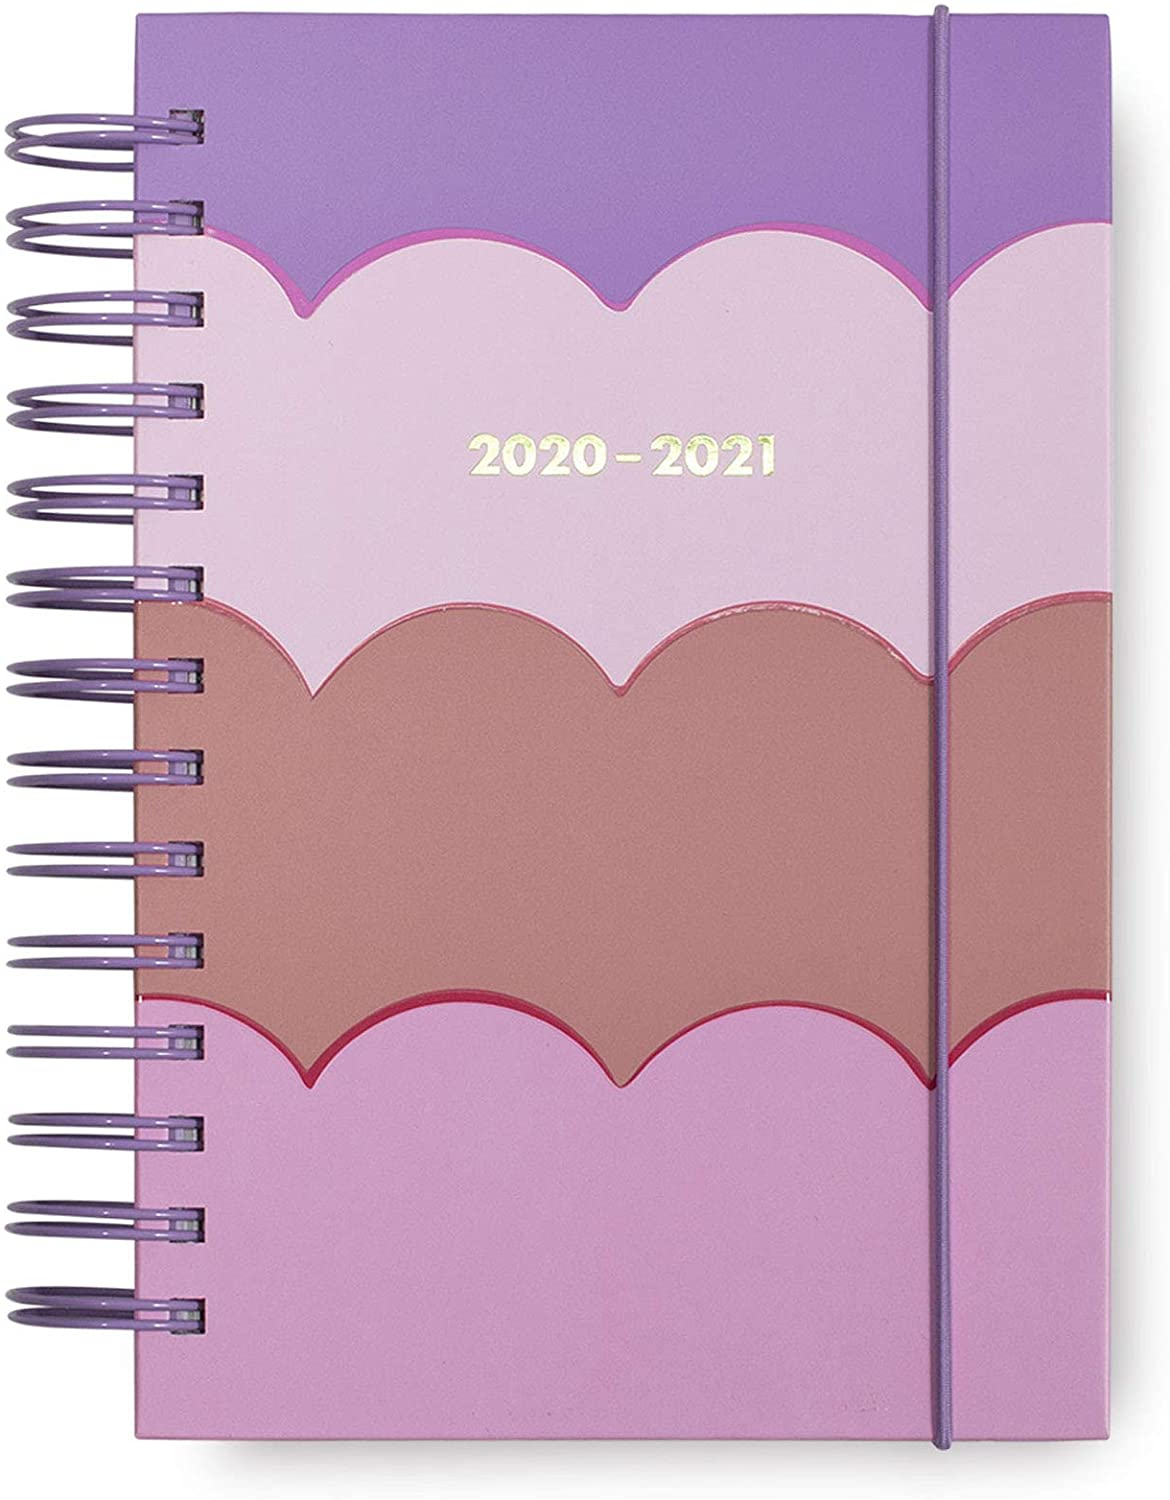 Kate Spade New York Medium 2020-2021 Planner Weekly & Monthly, 17 Month Hardcover Planner Dated Aug 2020 - Dec 2021 with Stickers, Pocket, Tab Dividers, Notes/Holiday Pages, Scallop (Pink/Purple)